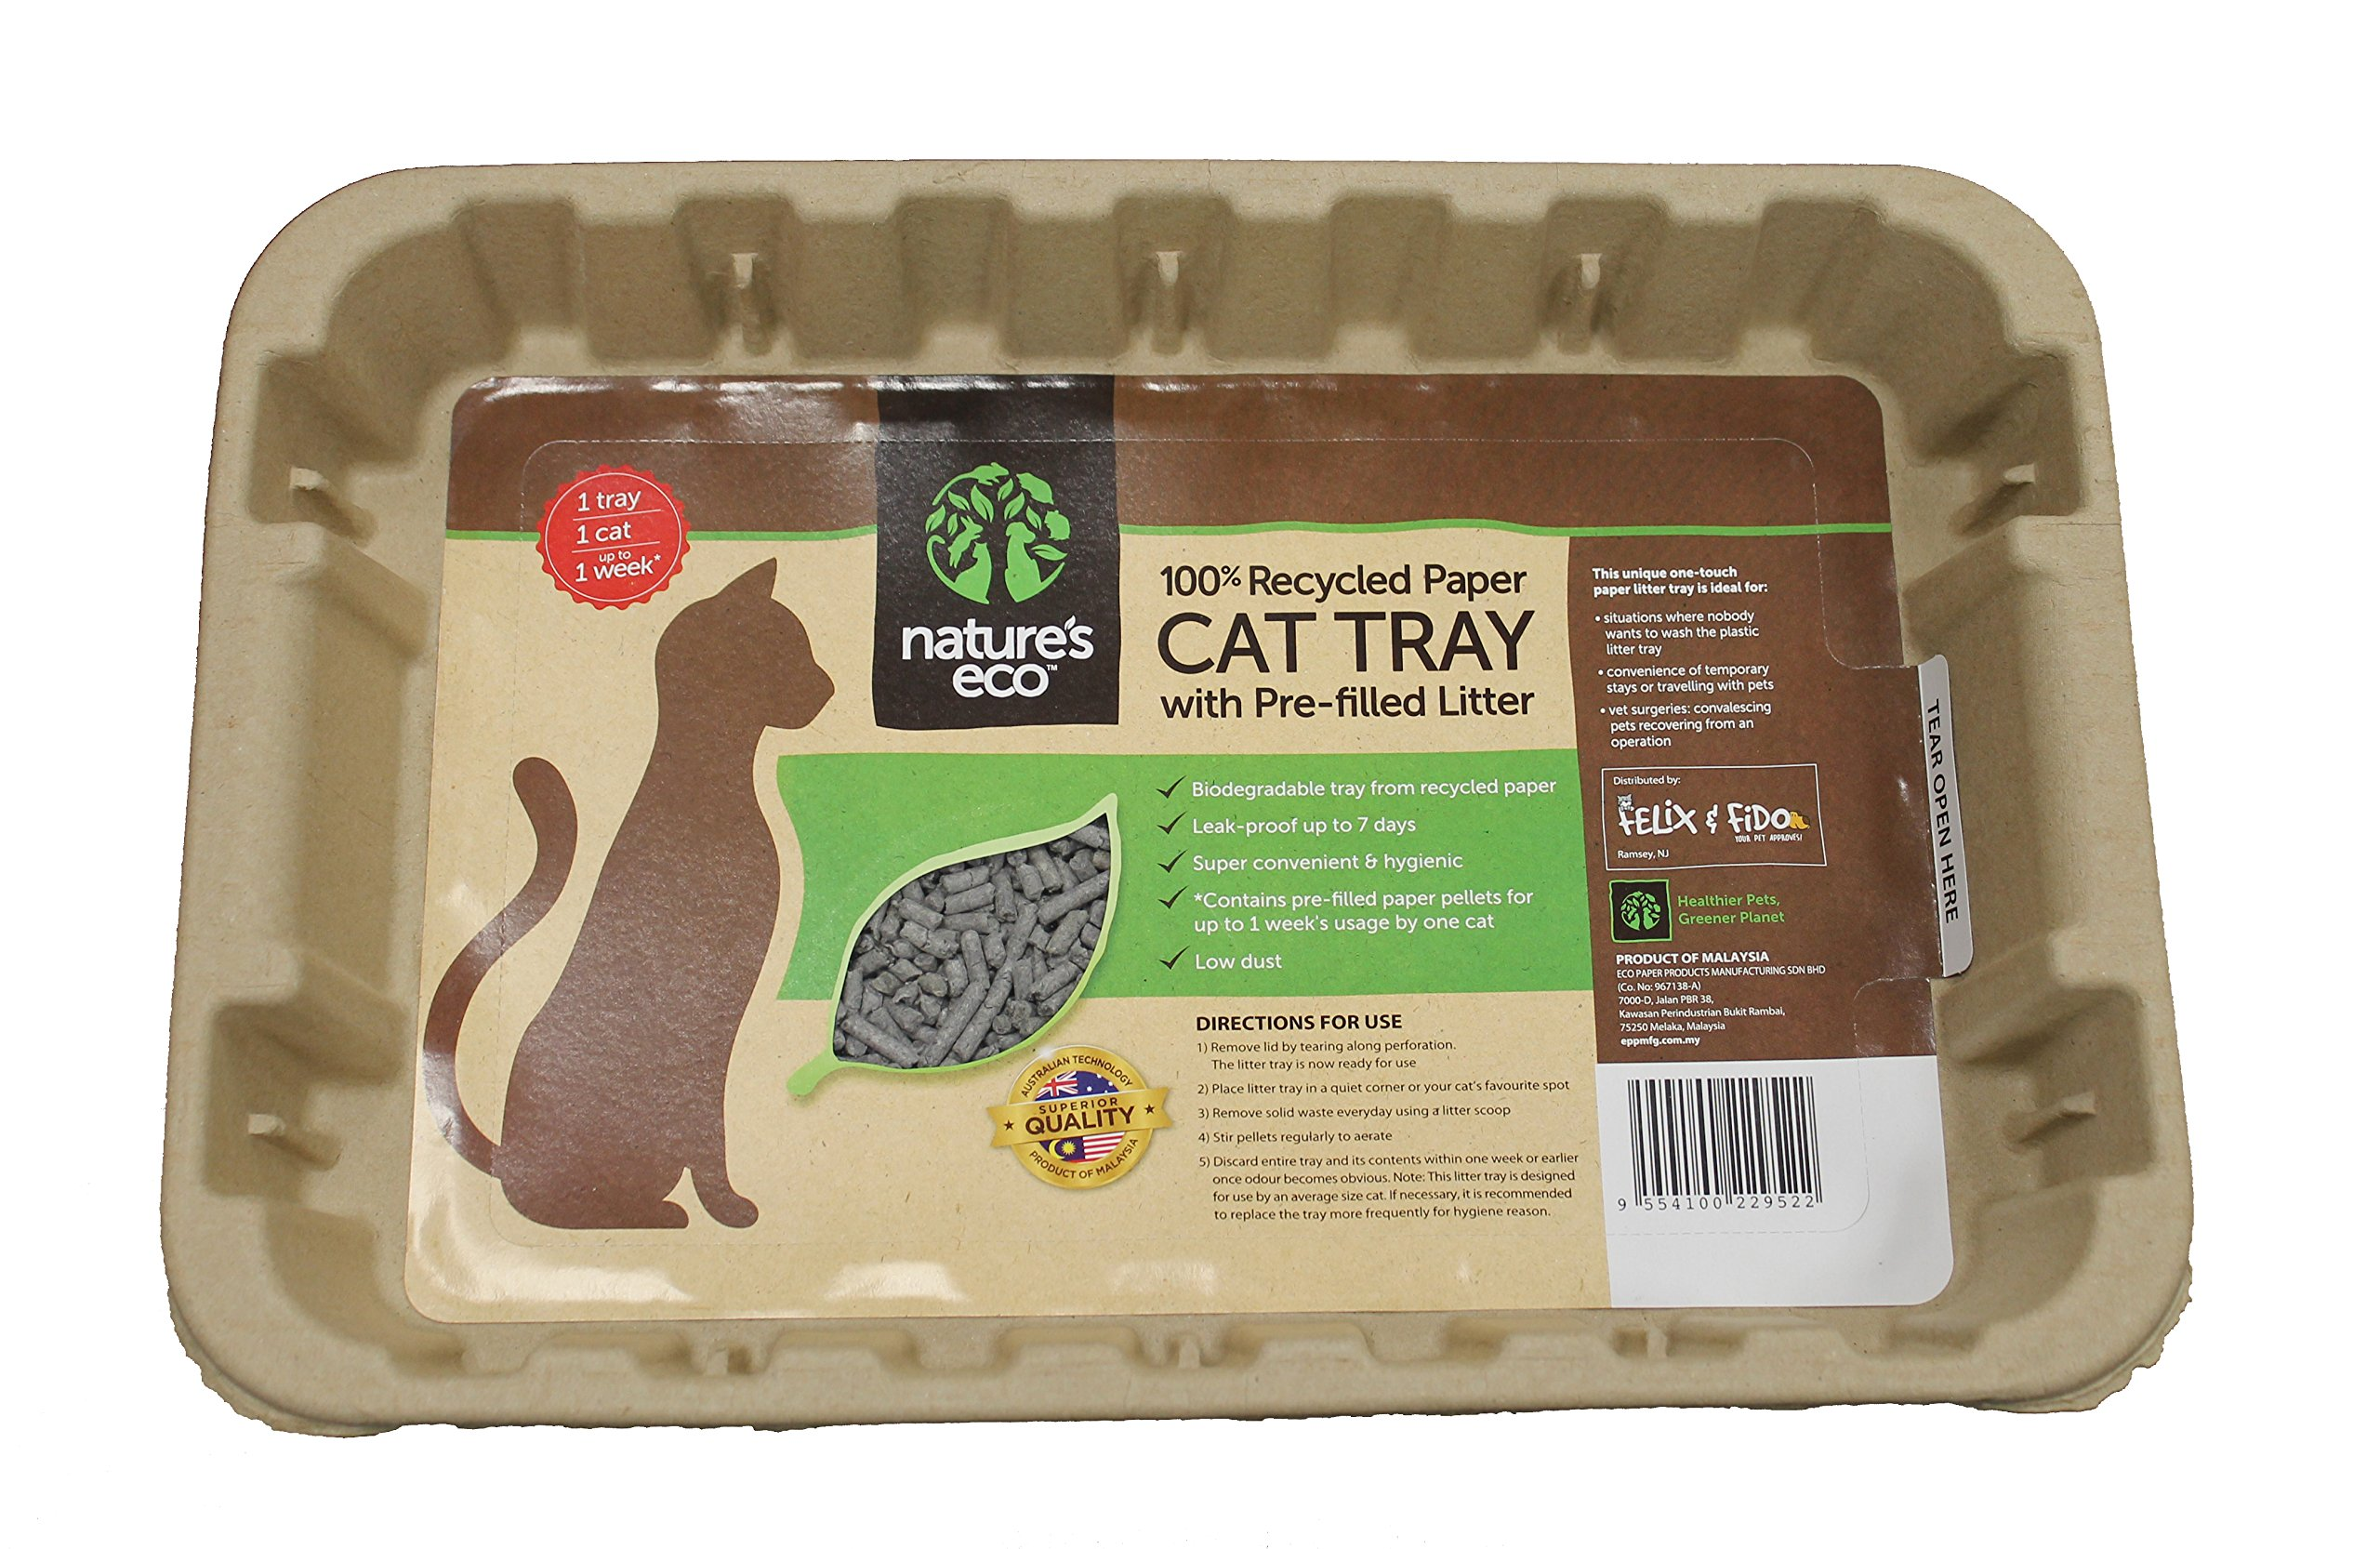 Disposable Cat Litter Boxes, Pre-Filled with 100% Recycled Paper Litter Pellets- 5 Pack of Trays- Includes Litter. Eco Friendly! Simply Peel Off Perforated Lid, Use, Dispose of Entire Tray! 1